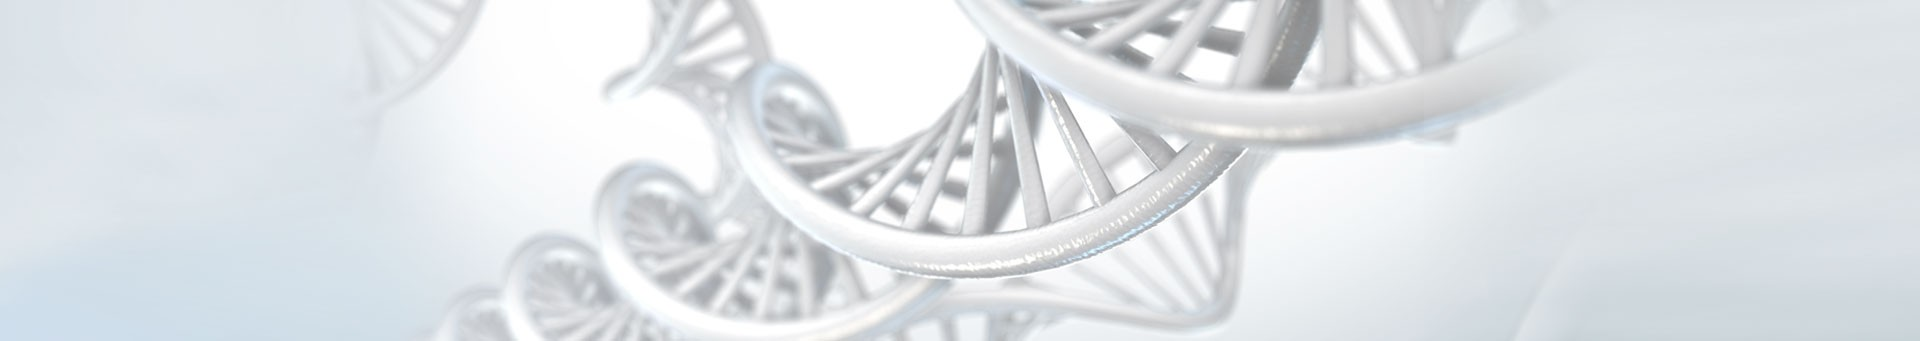 DNA Signature Capturing Technology